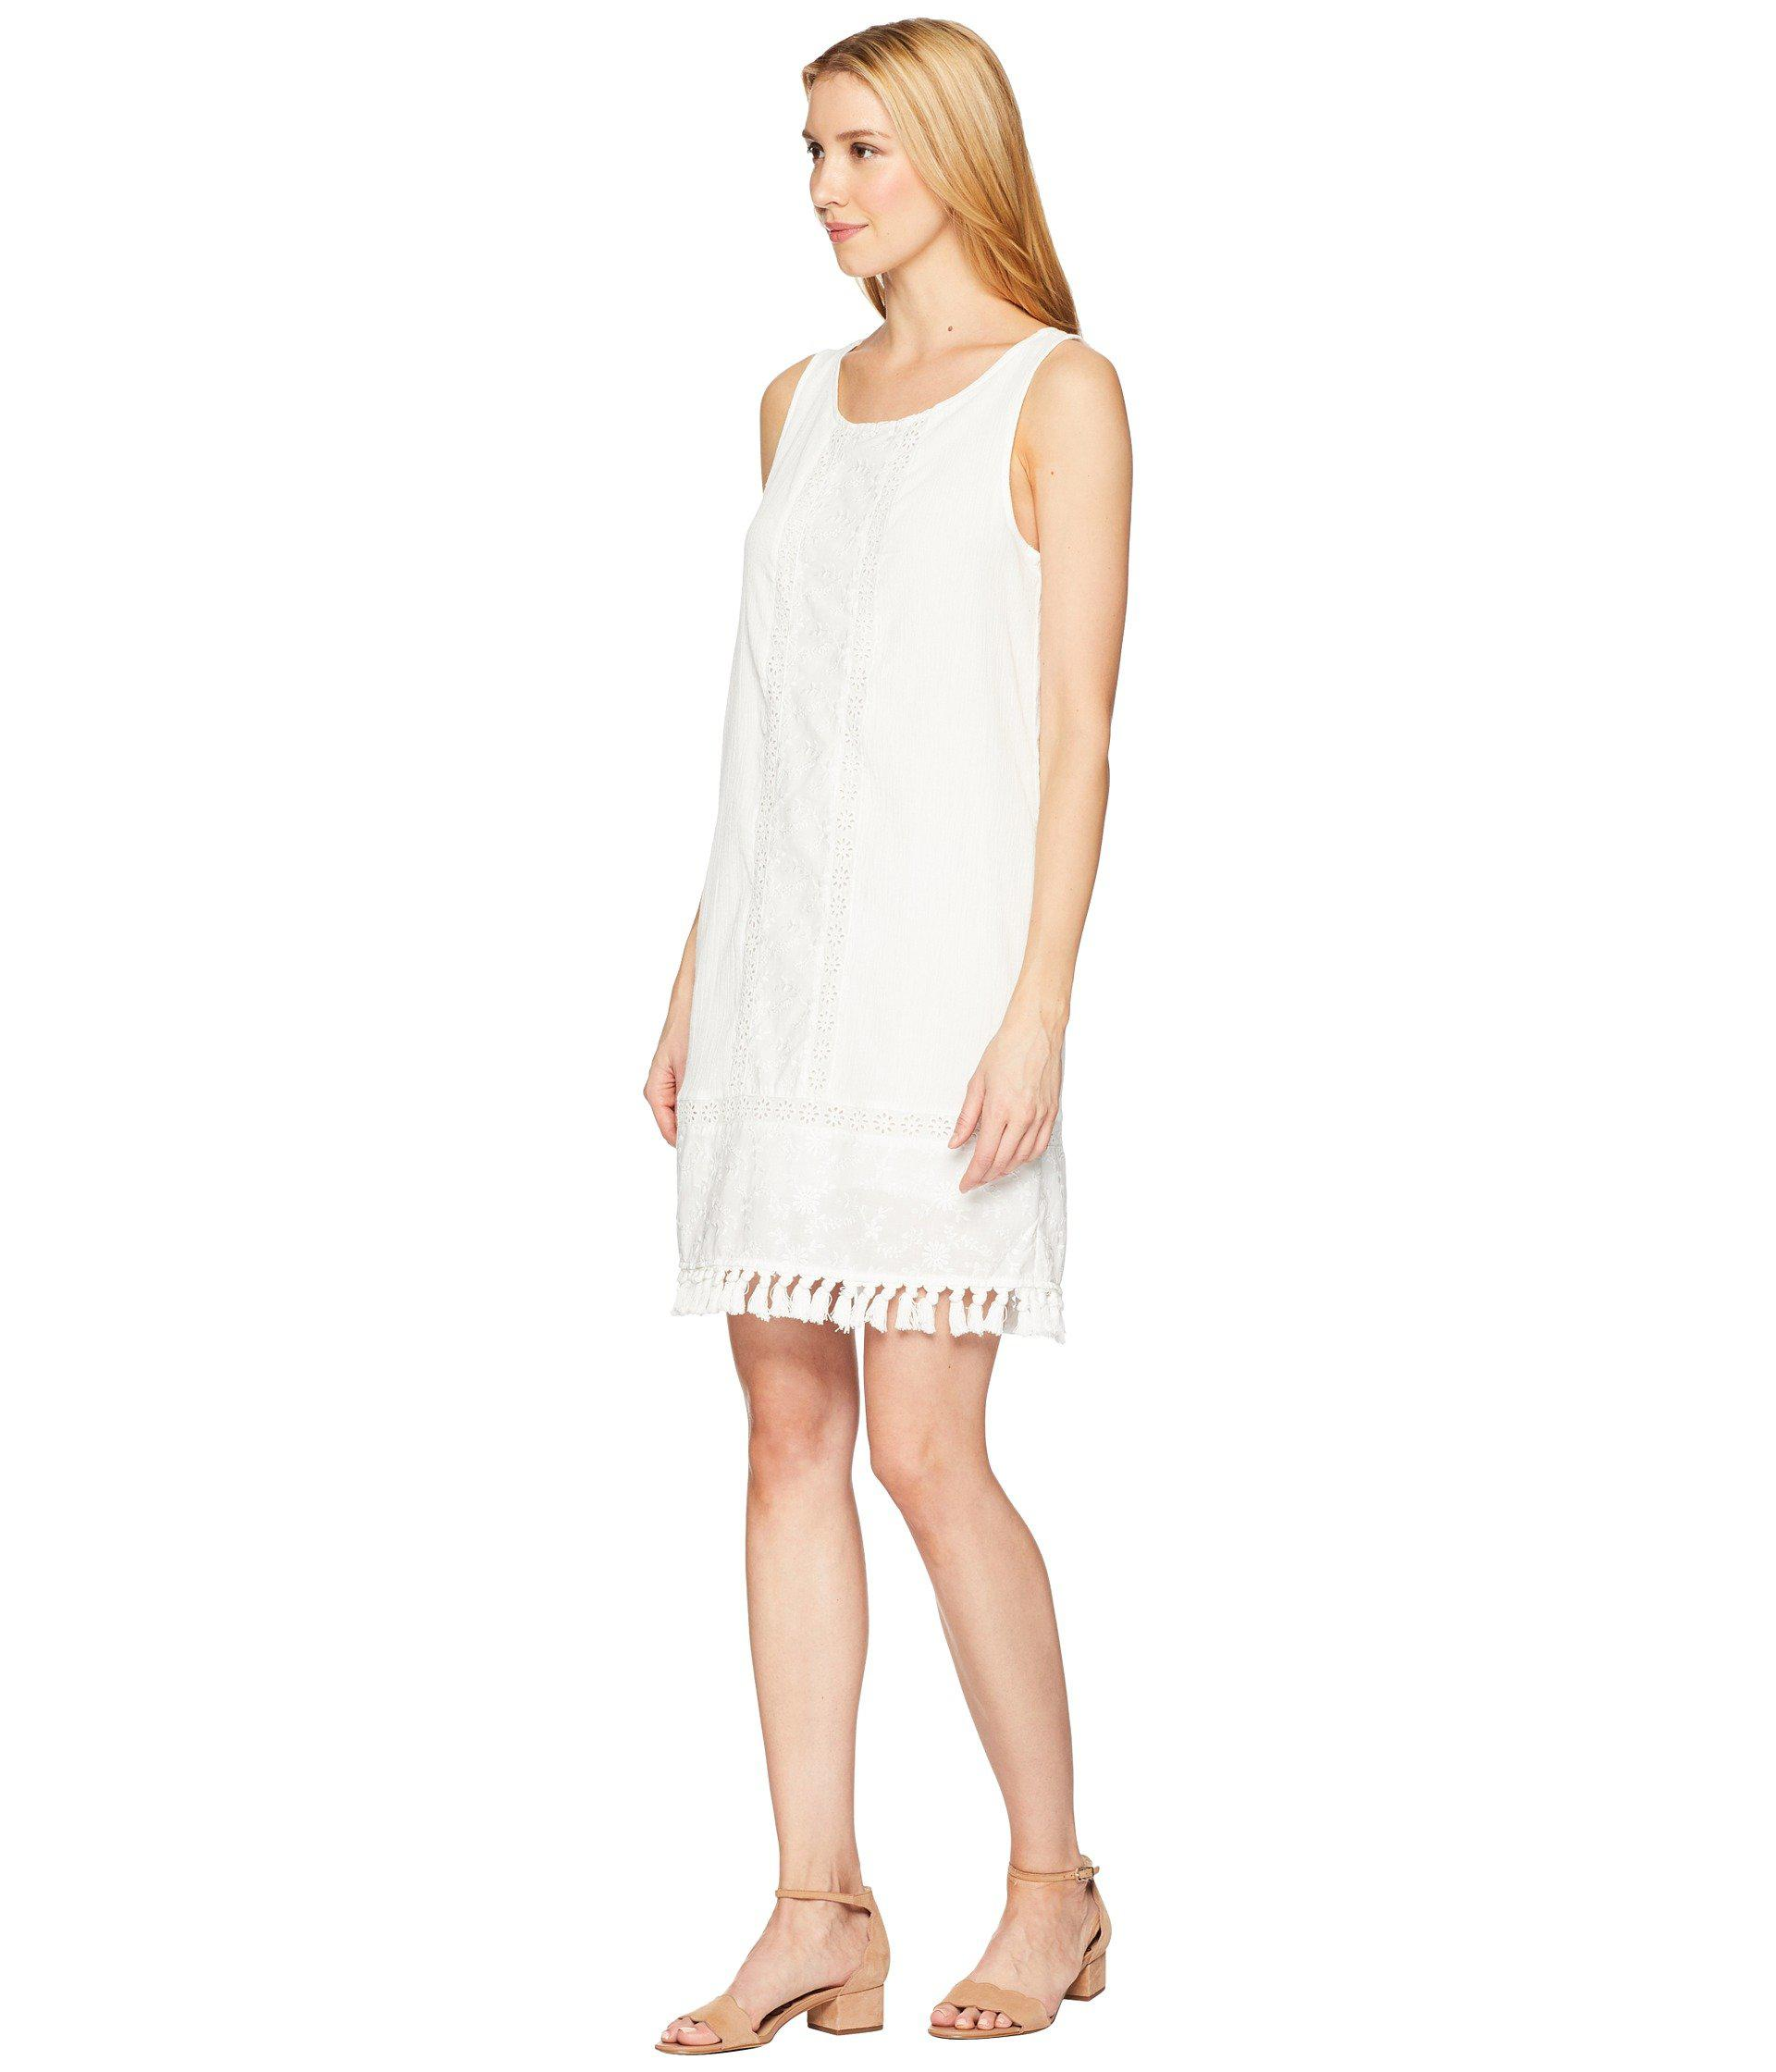 38e8bea81a Lyst - Sanctuary Alicia Boheme Dress in White - Save 32%